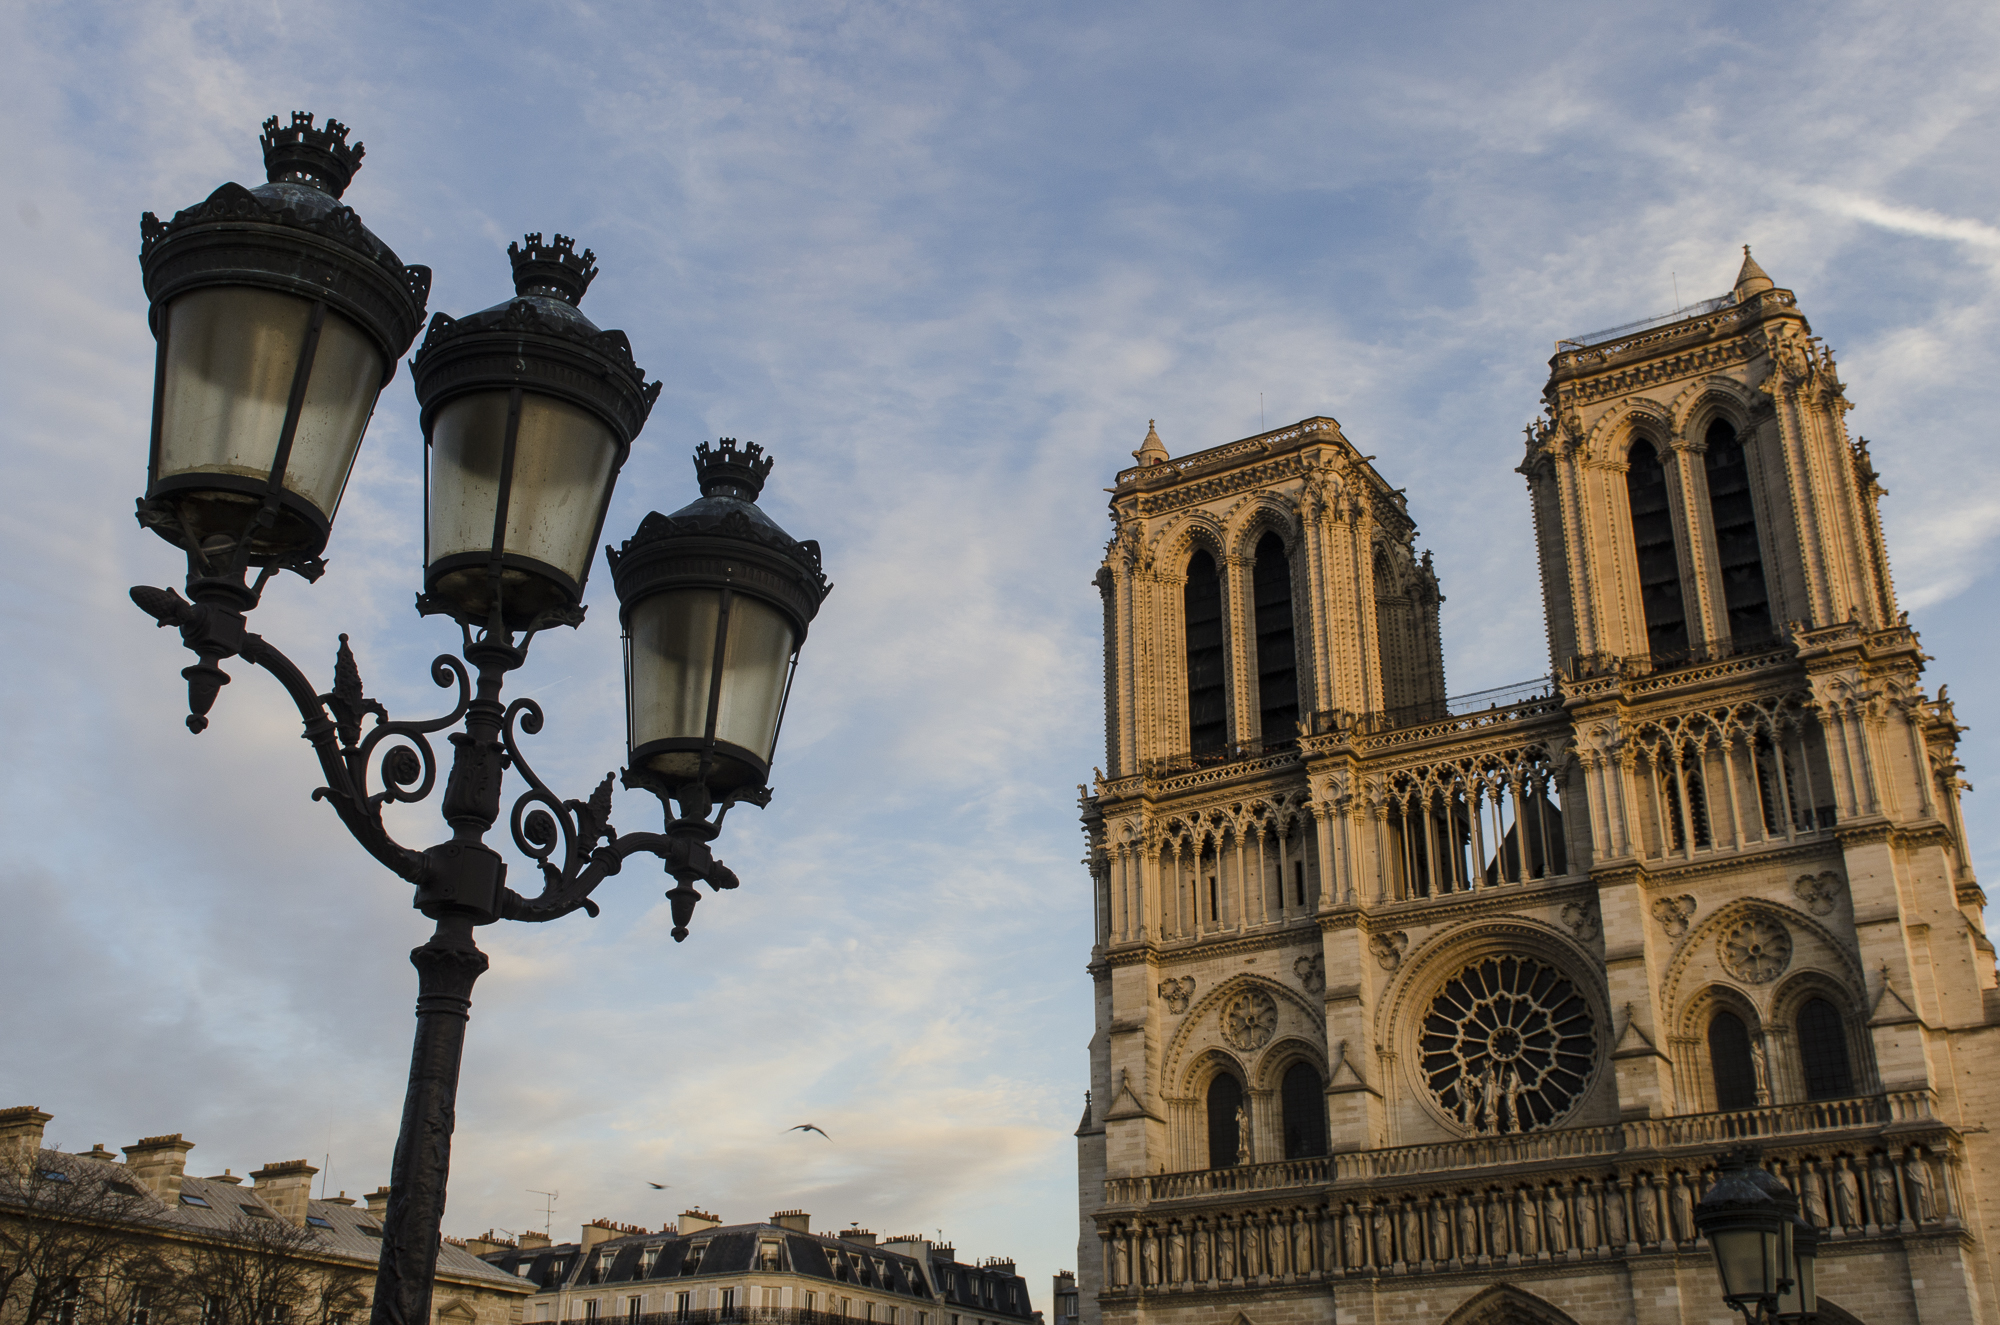 The lanterns fill the empty part of the sky and ballance the picture with Notre Dame on the right. Photo by Alexander J.E. Bradley.